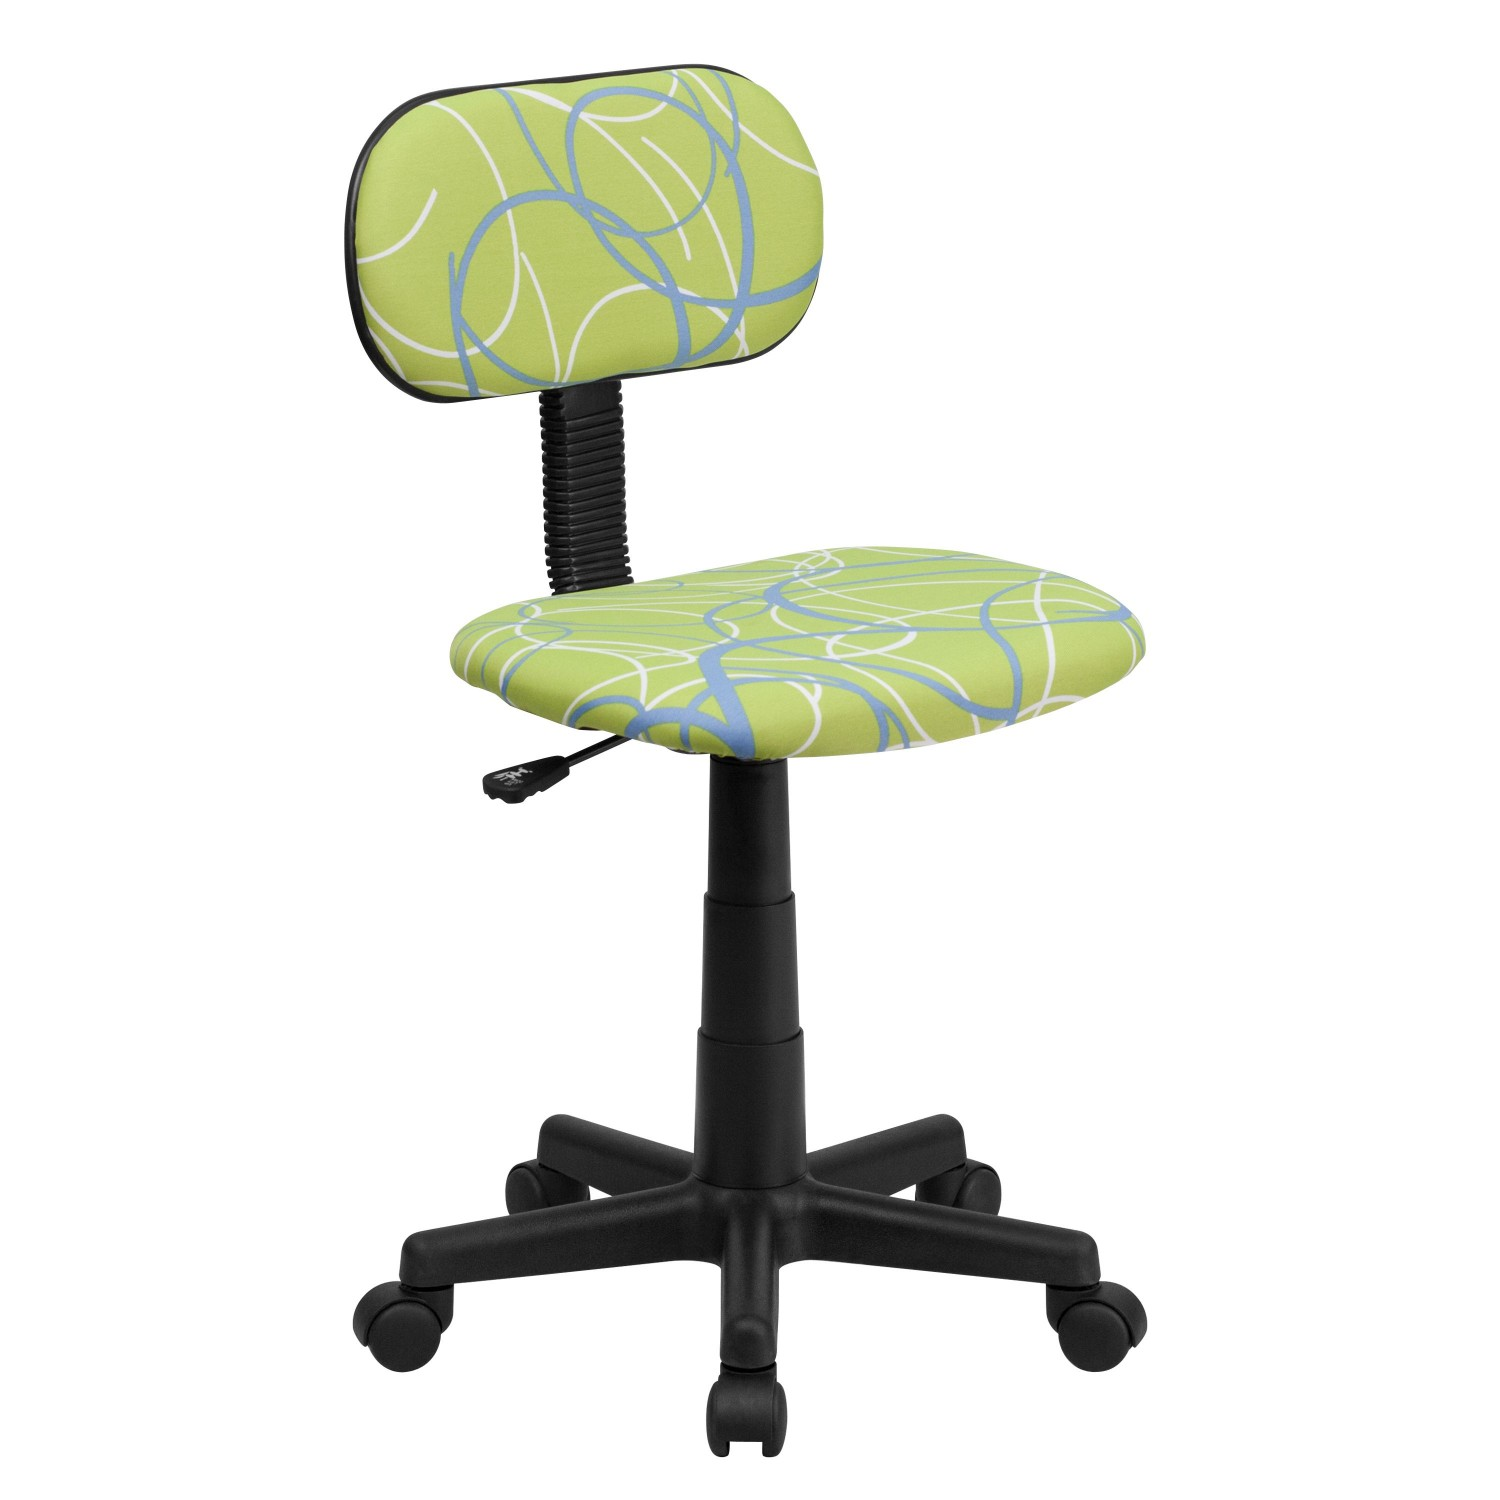 Flash Furniture BT-SWRL-GG Blue and White Swirl Printed Green Computer Chair